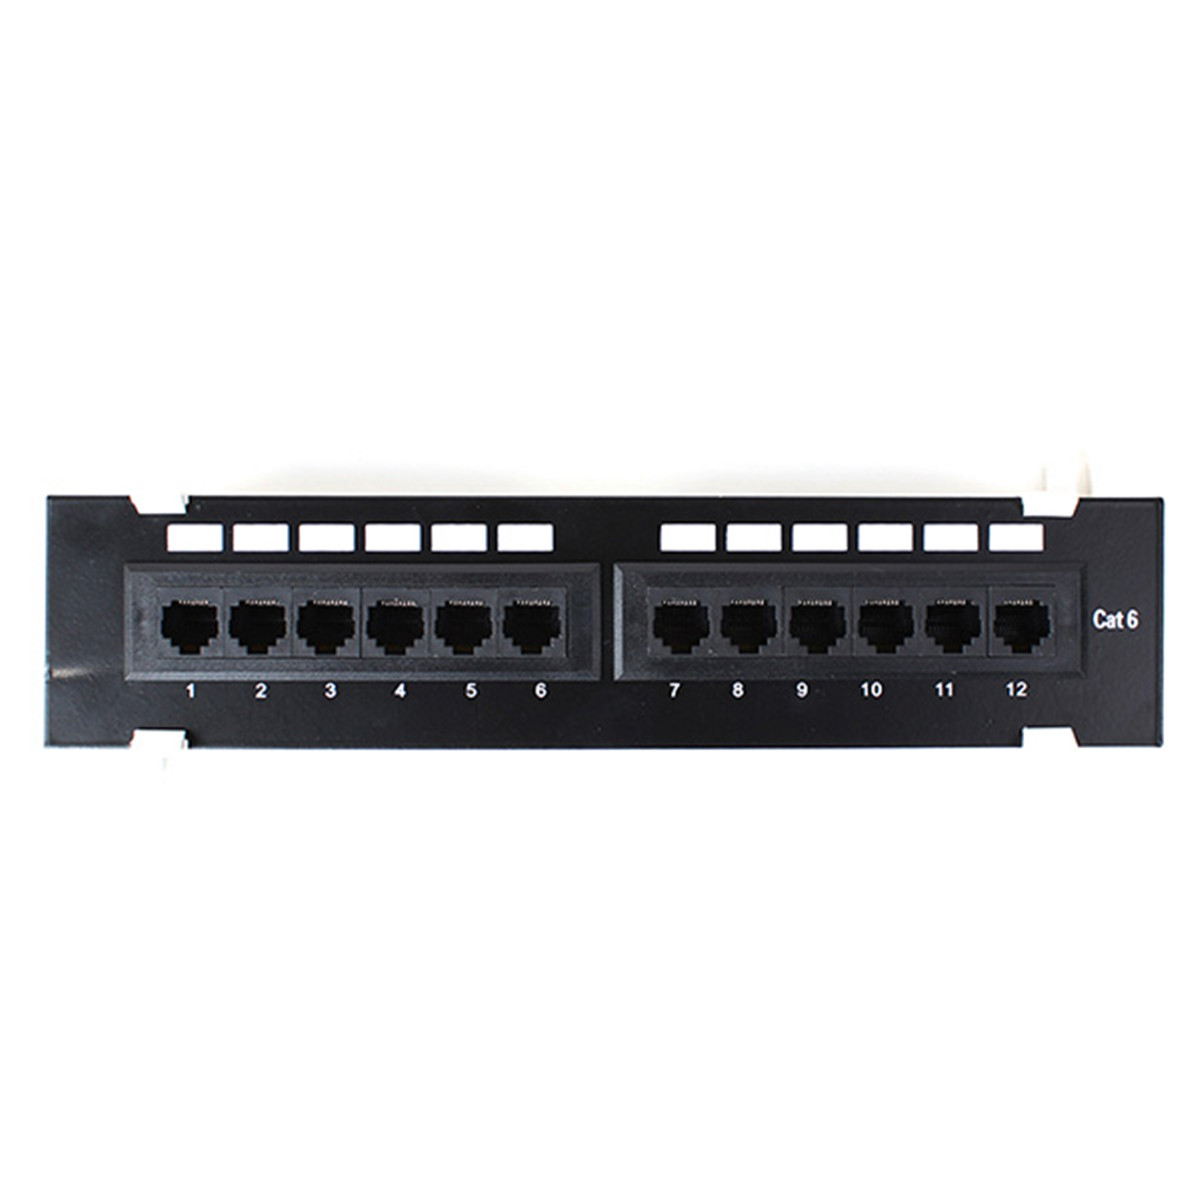 Cat6 12 Port Pro Rj45 Mini Patch Panel 110 Network Surface Wall Mount Cable Networking Wiring Block Jack 1u Ebay Detail Image